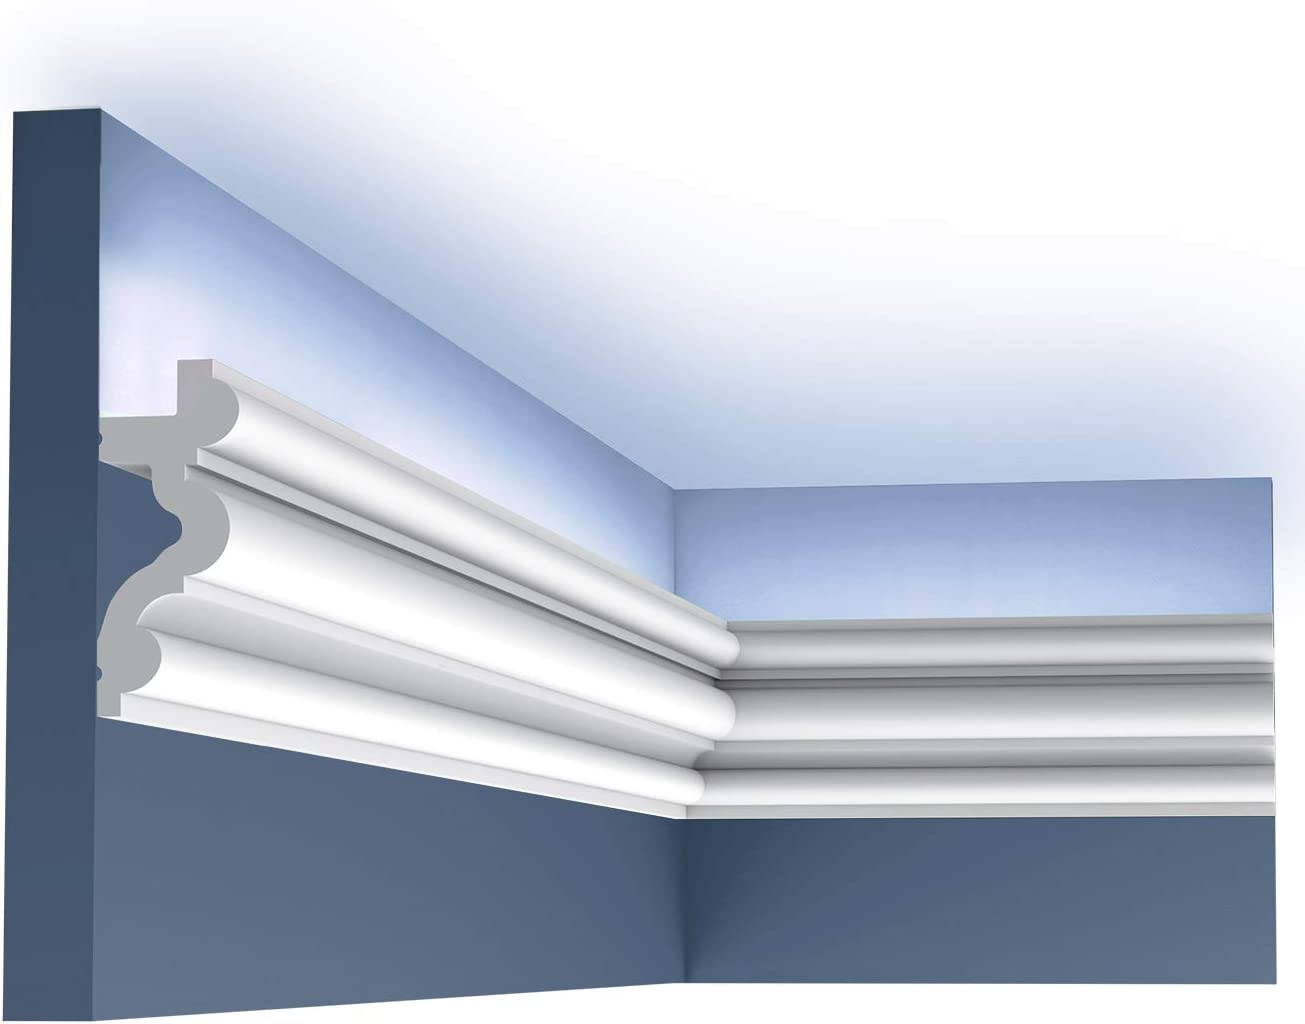 Cornice Moulding Orac Decor C324 LUXXUS AUTOIRE Decorative Moulding Moulding for Decoration Moulding for indirect Lighting Timeless Classic Design White 2 m